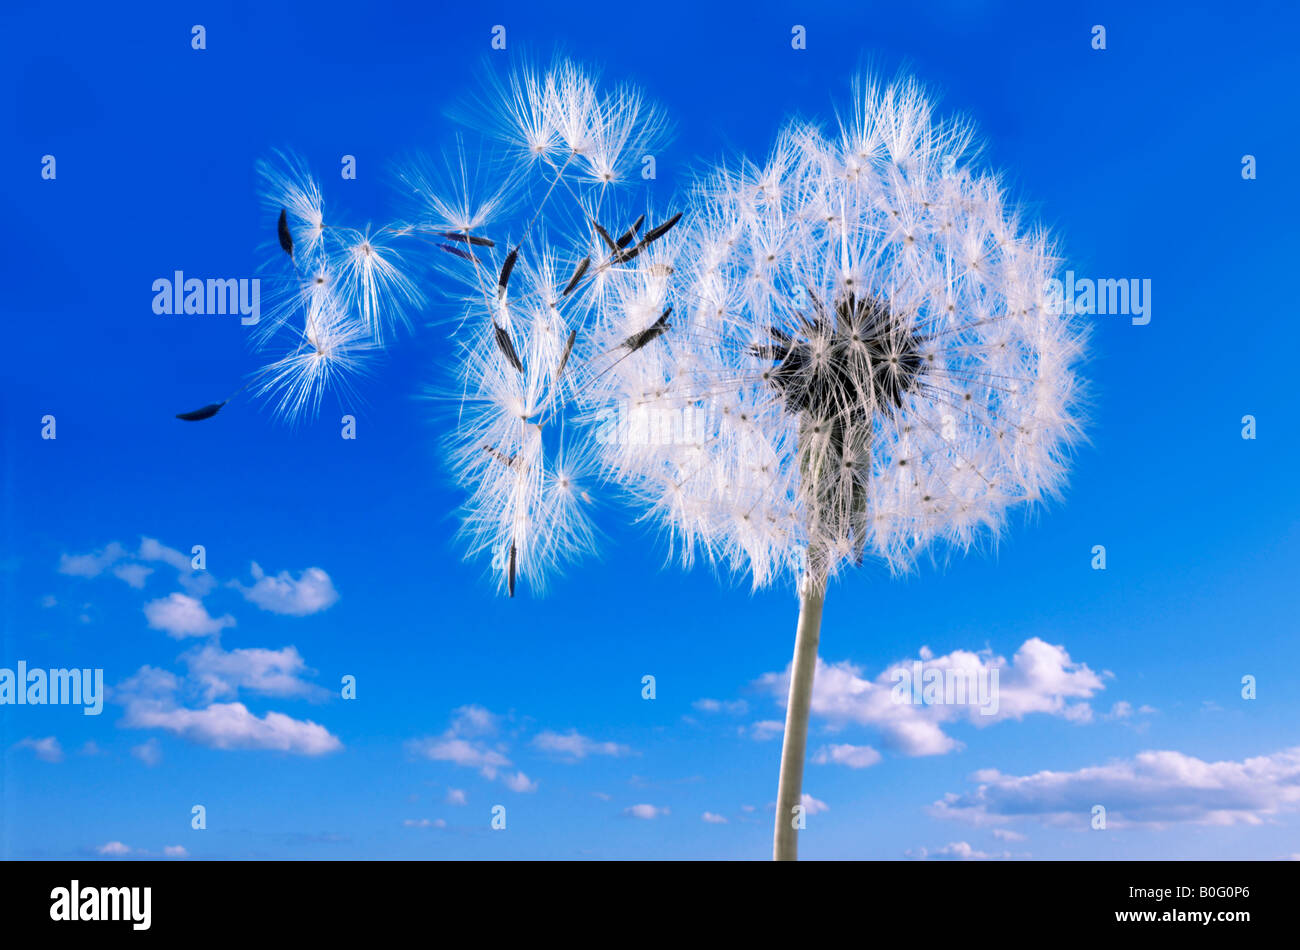 Dandelion Clock  against a blue sky - Stock Image